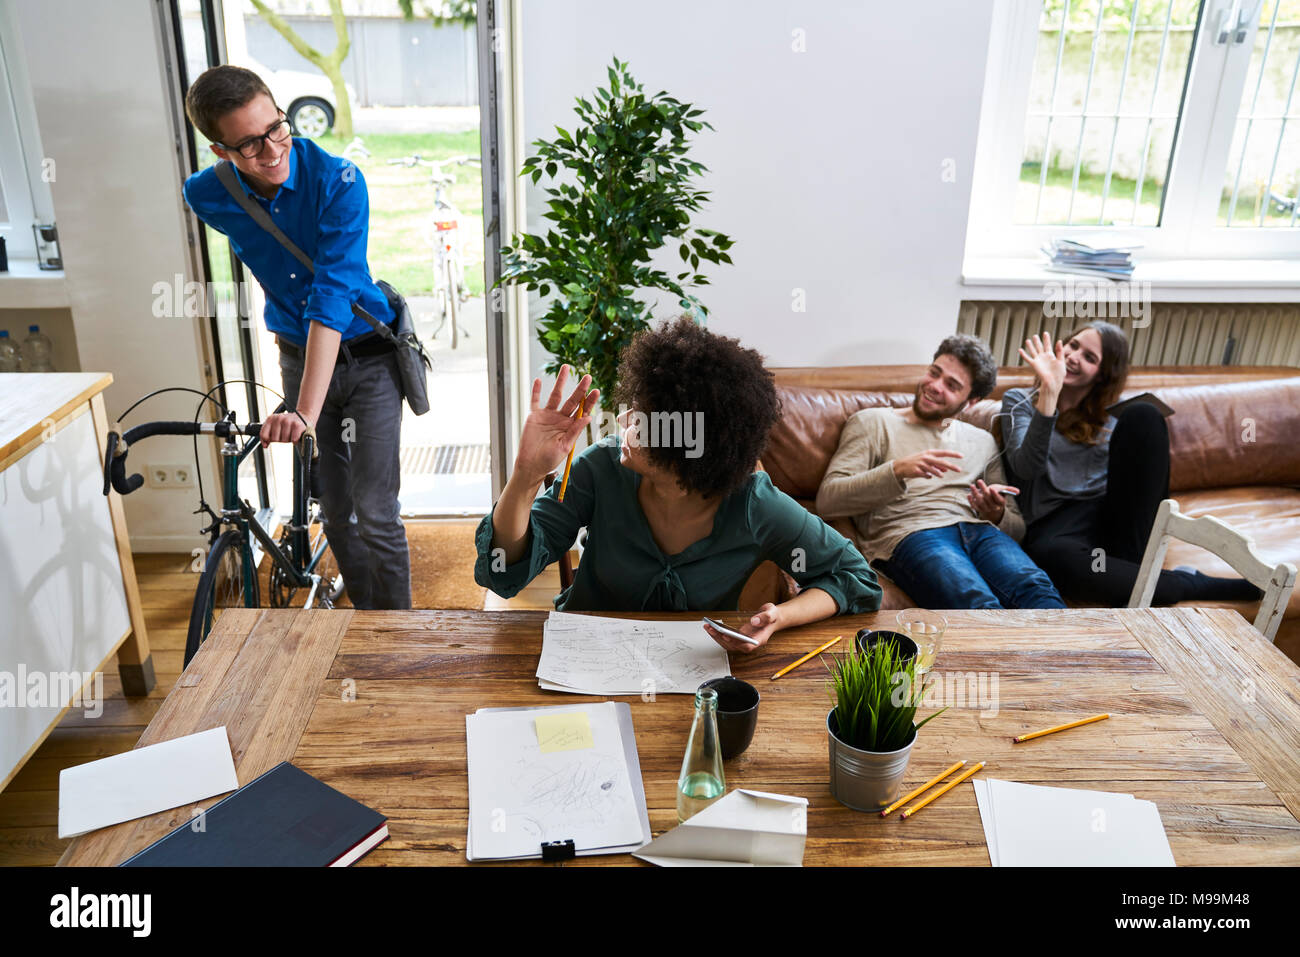 Coworkers waving at young man with bicycle arriving in modern office - Stock Image